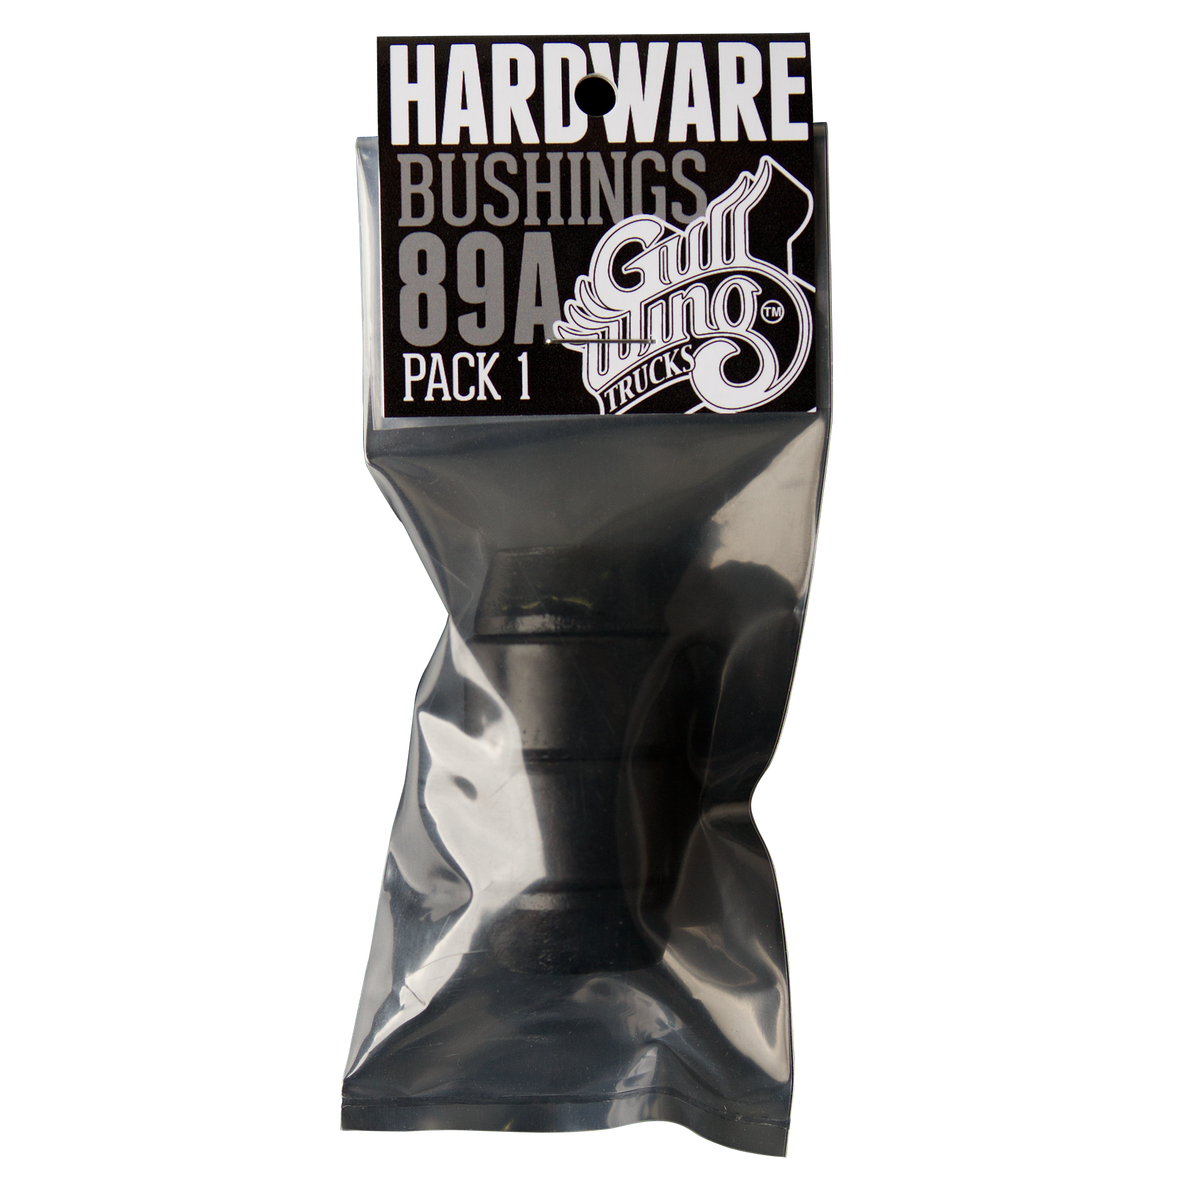 Gullwing 89a Bushings Black